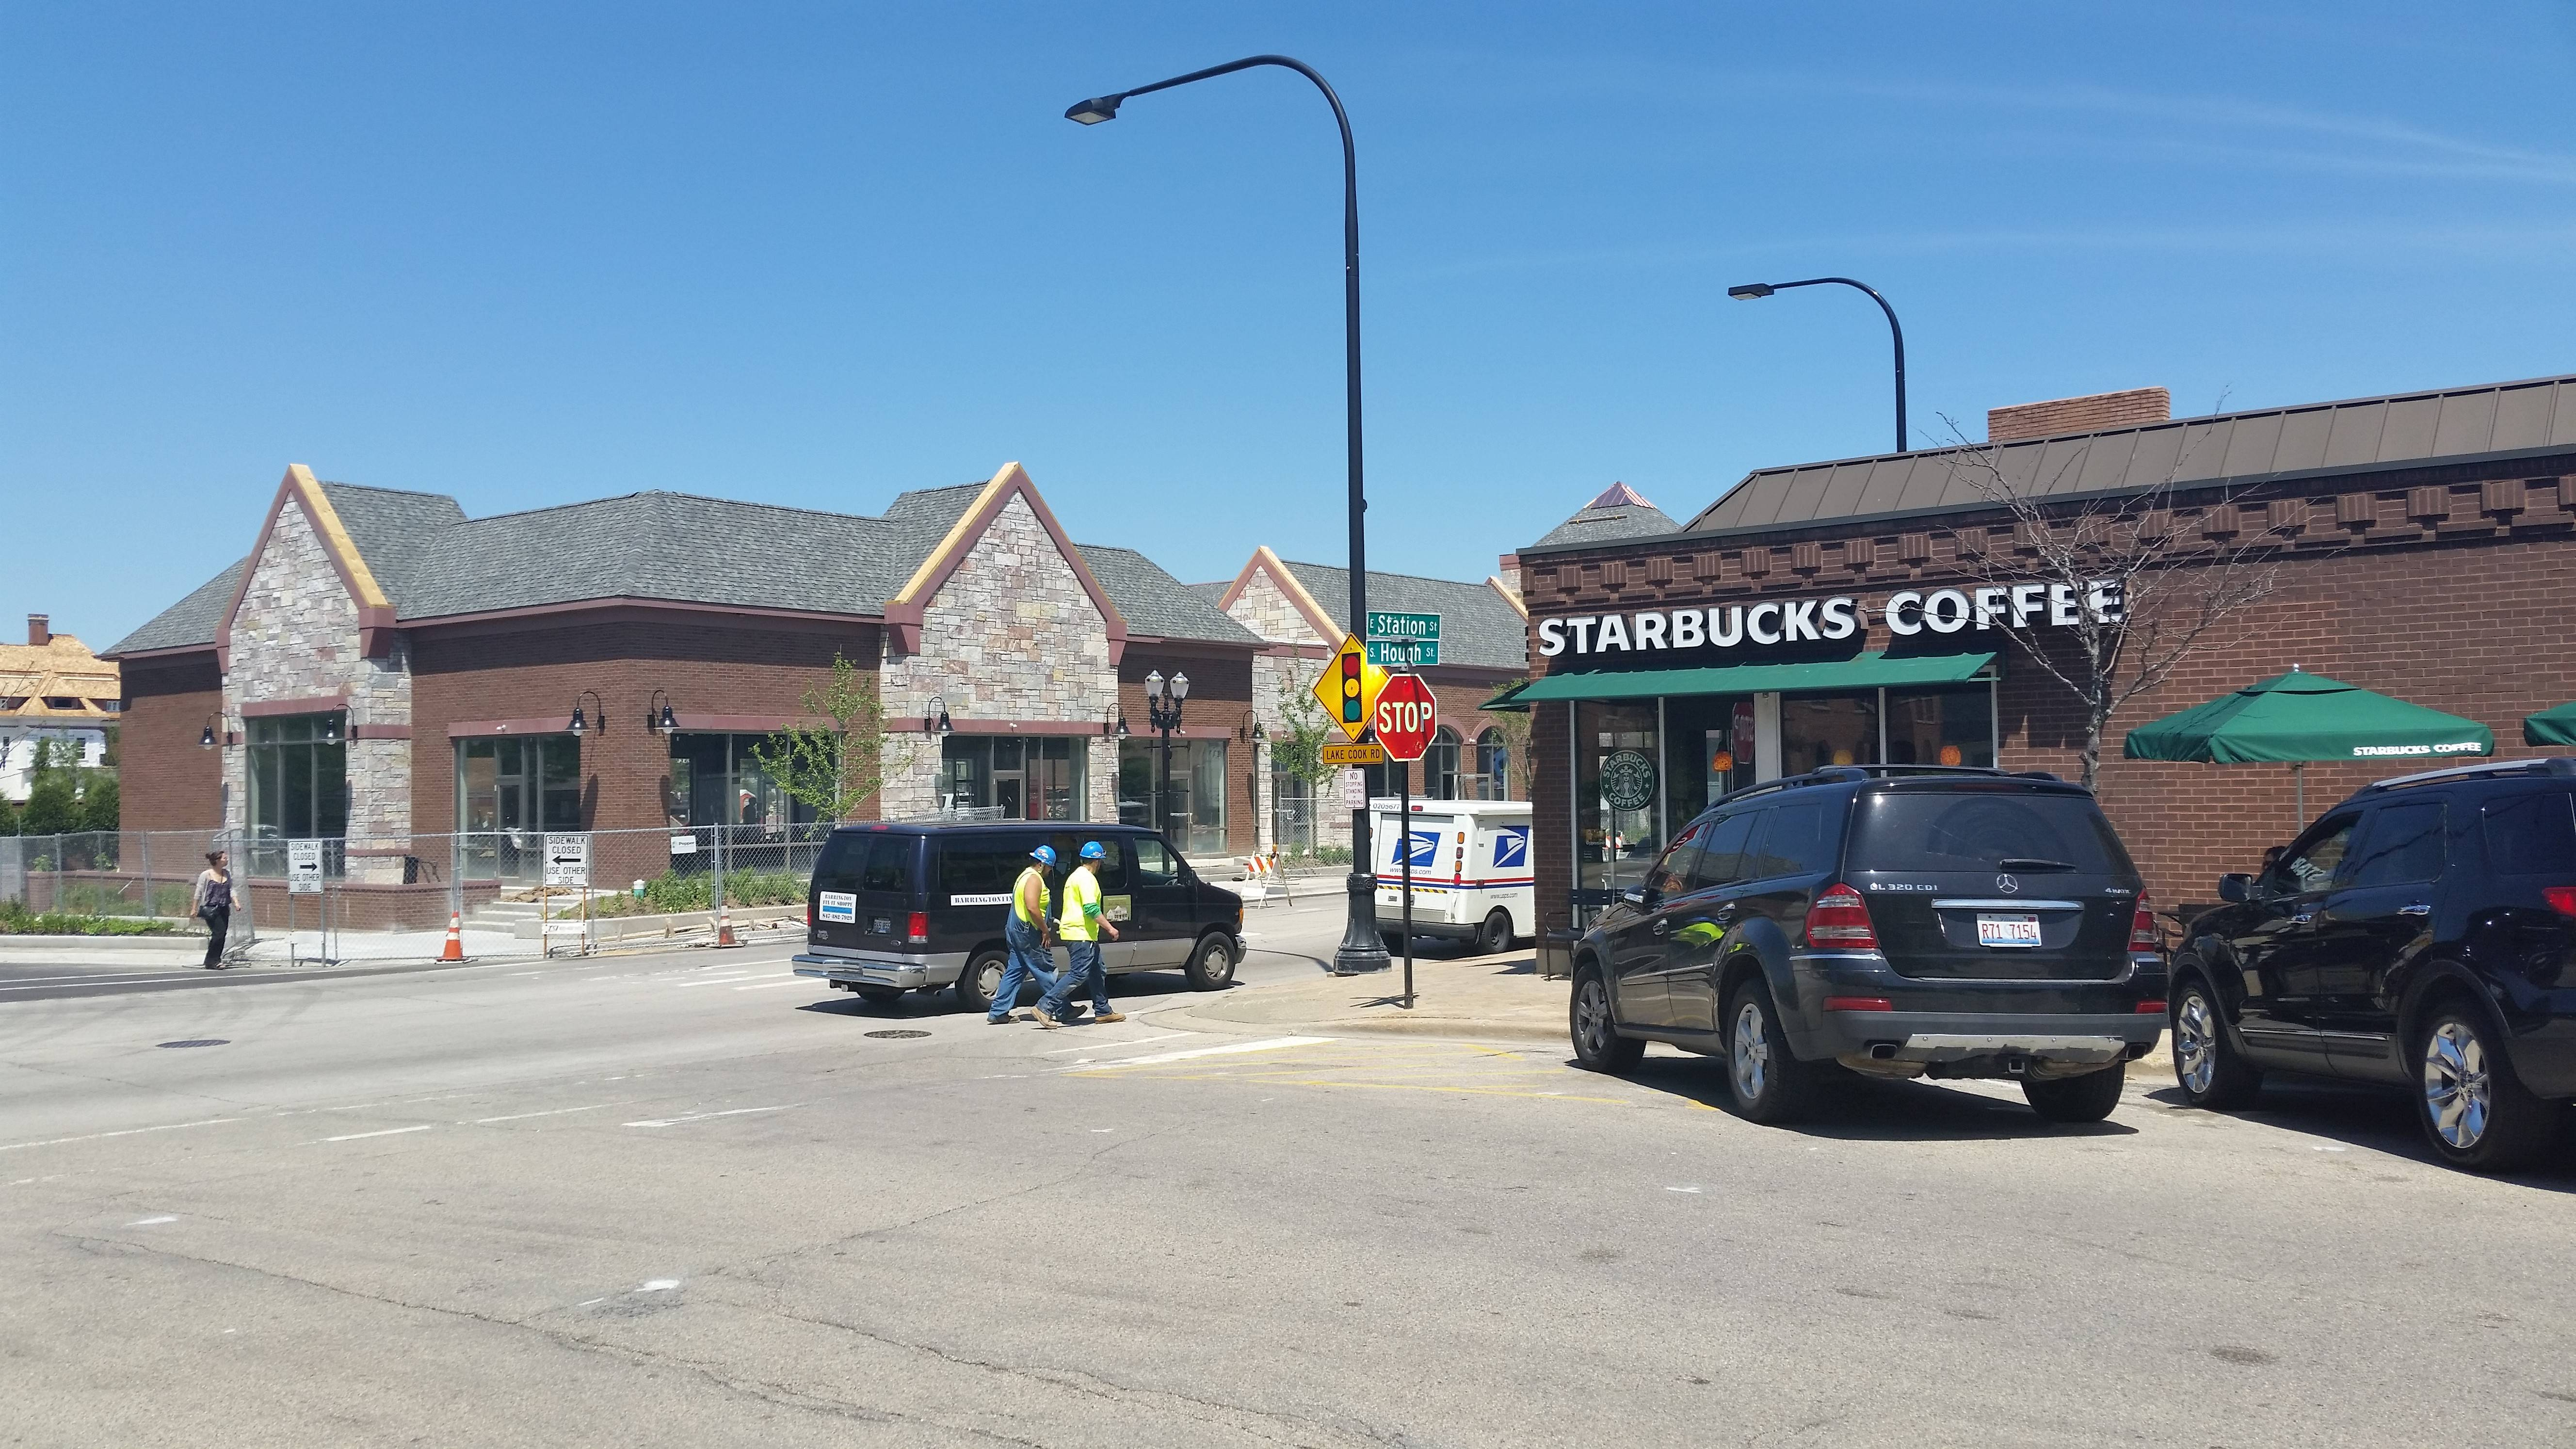 The Starbucks at the corner of Station and Hough streets in downtown Barrington will relocate to the Barrington Village Center project across the street. The village said the Starbucks will double in size with the move.